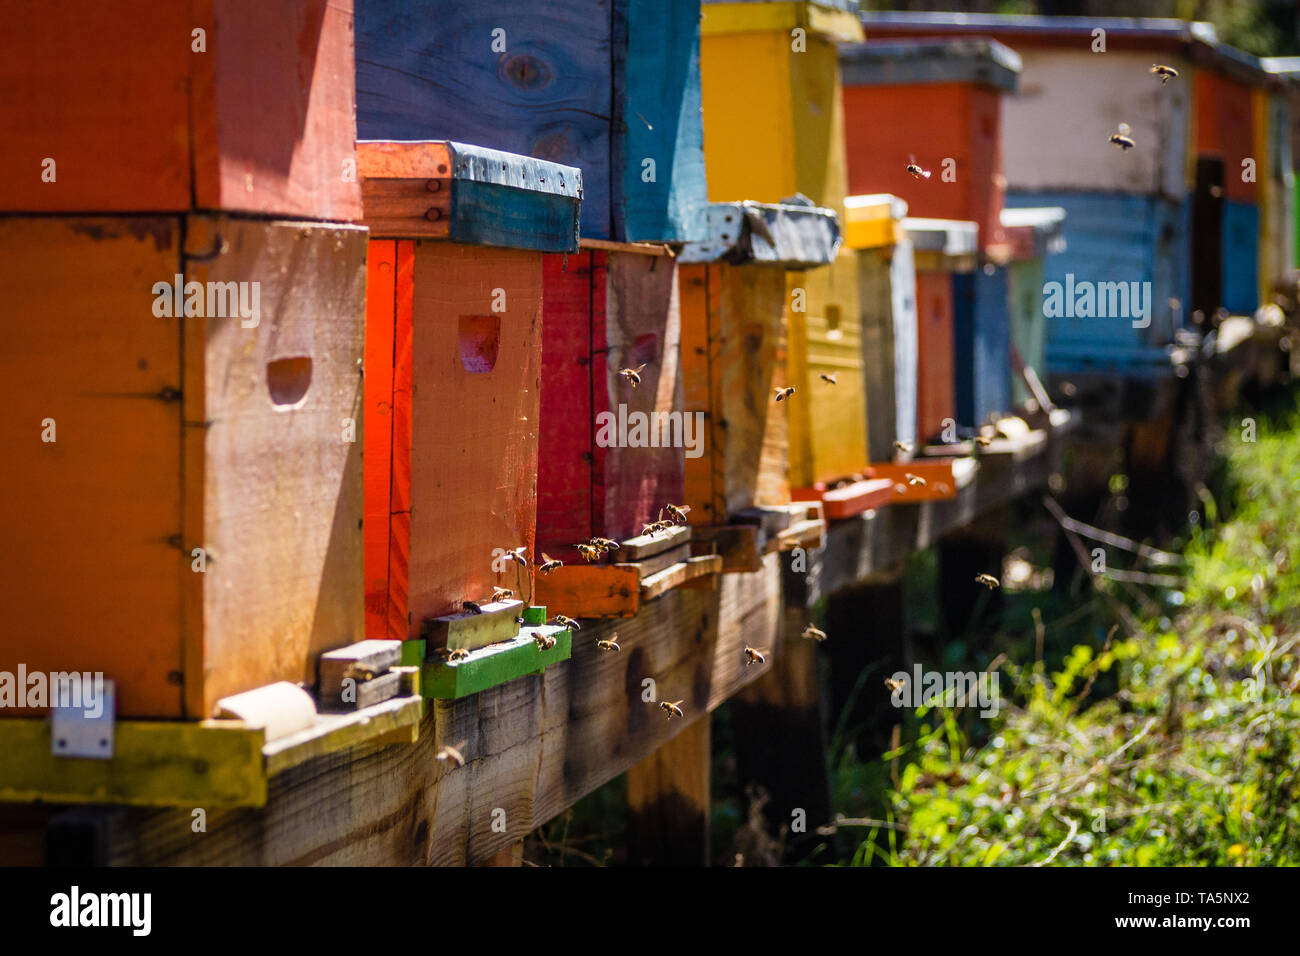 Bee hives of different colors on a sunny day - Stock Image